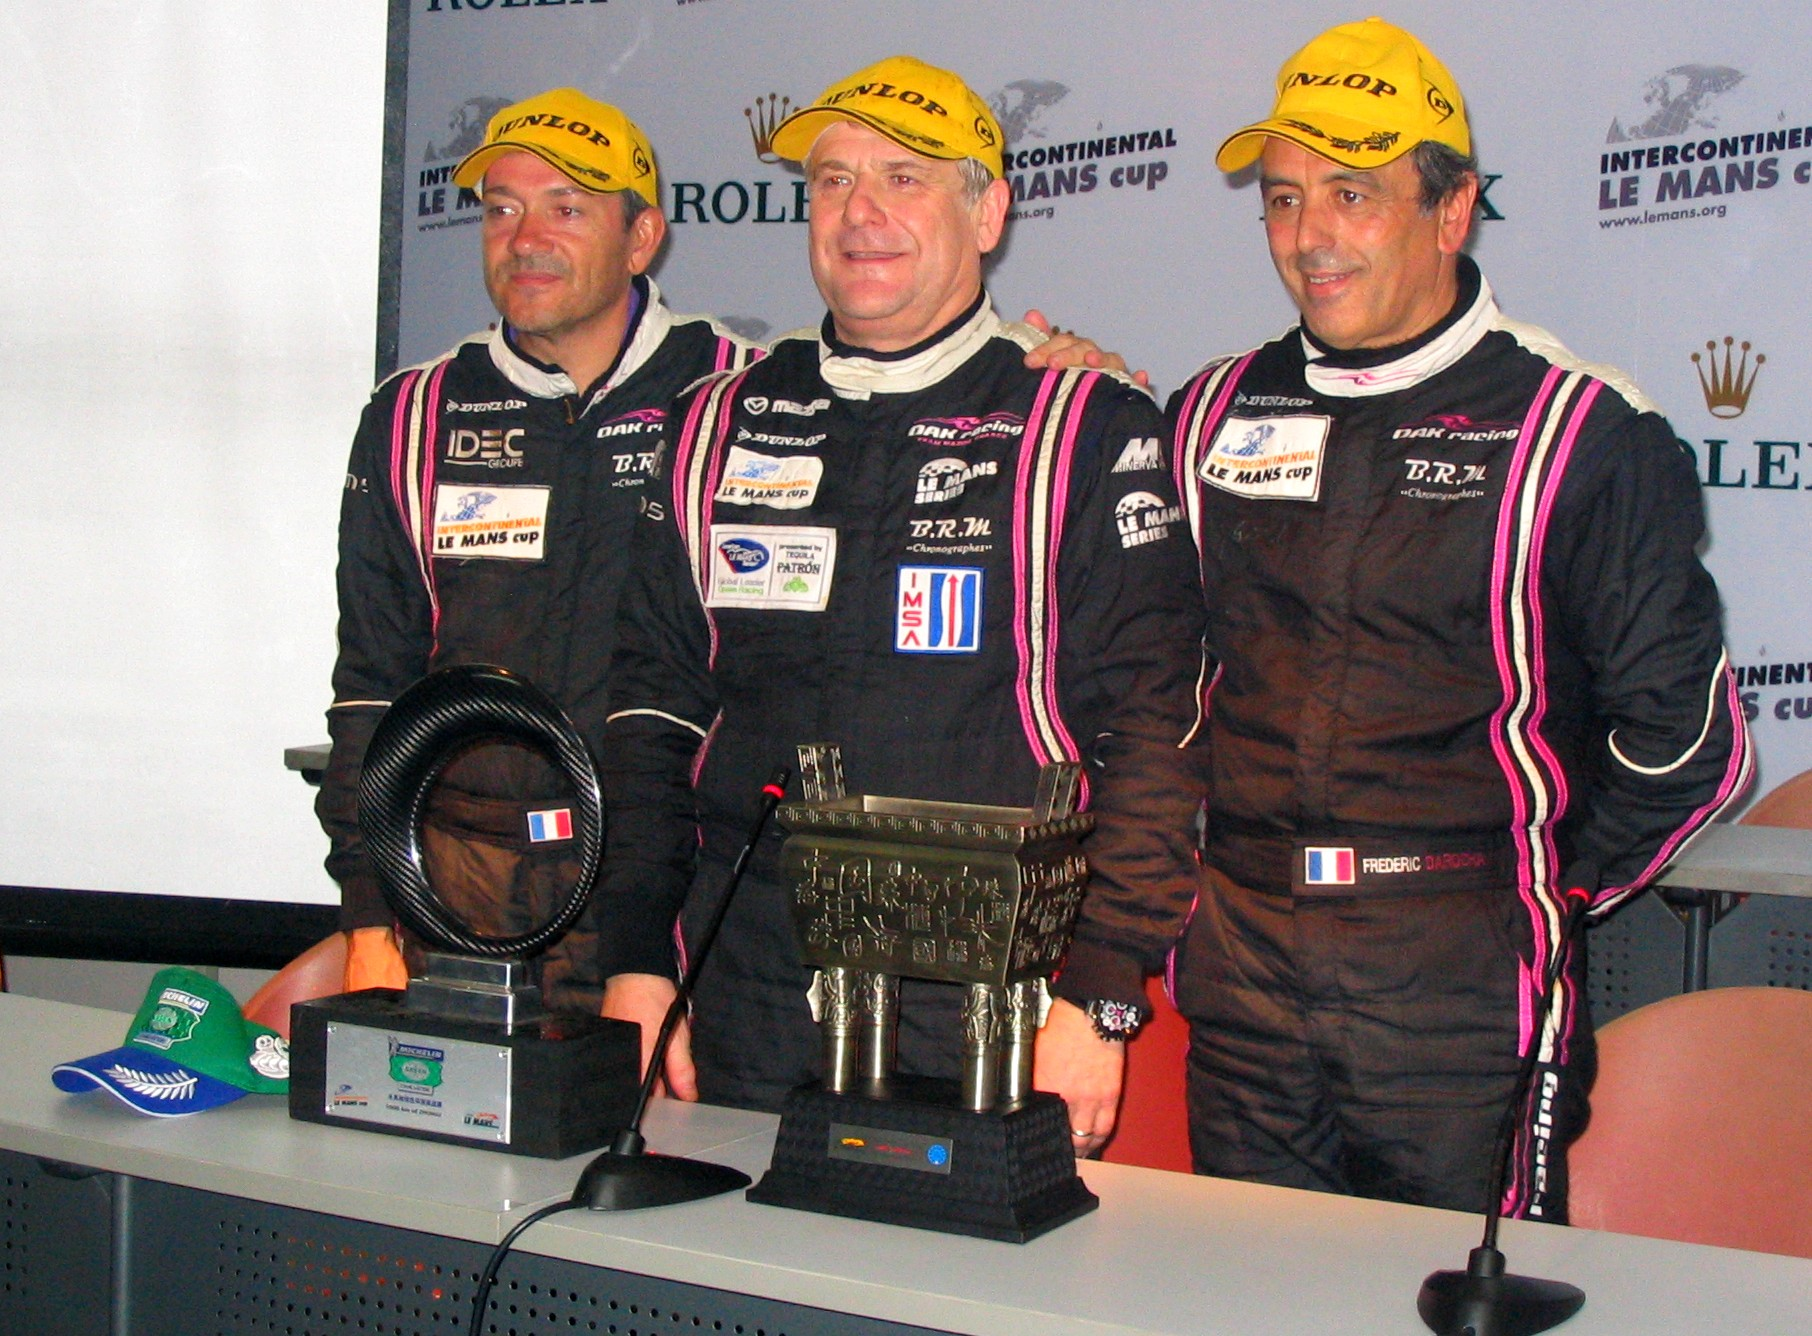 Nicolet (centre) after winning the [[2010 1000 km of Zhuhai]] with Patrice Lafargue (left) and Frédéric da Rocha.